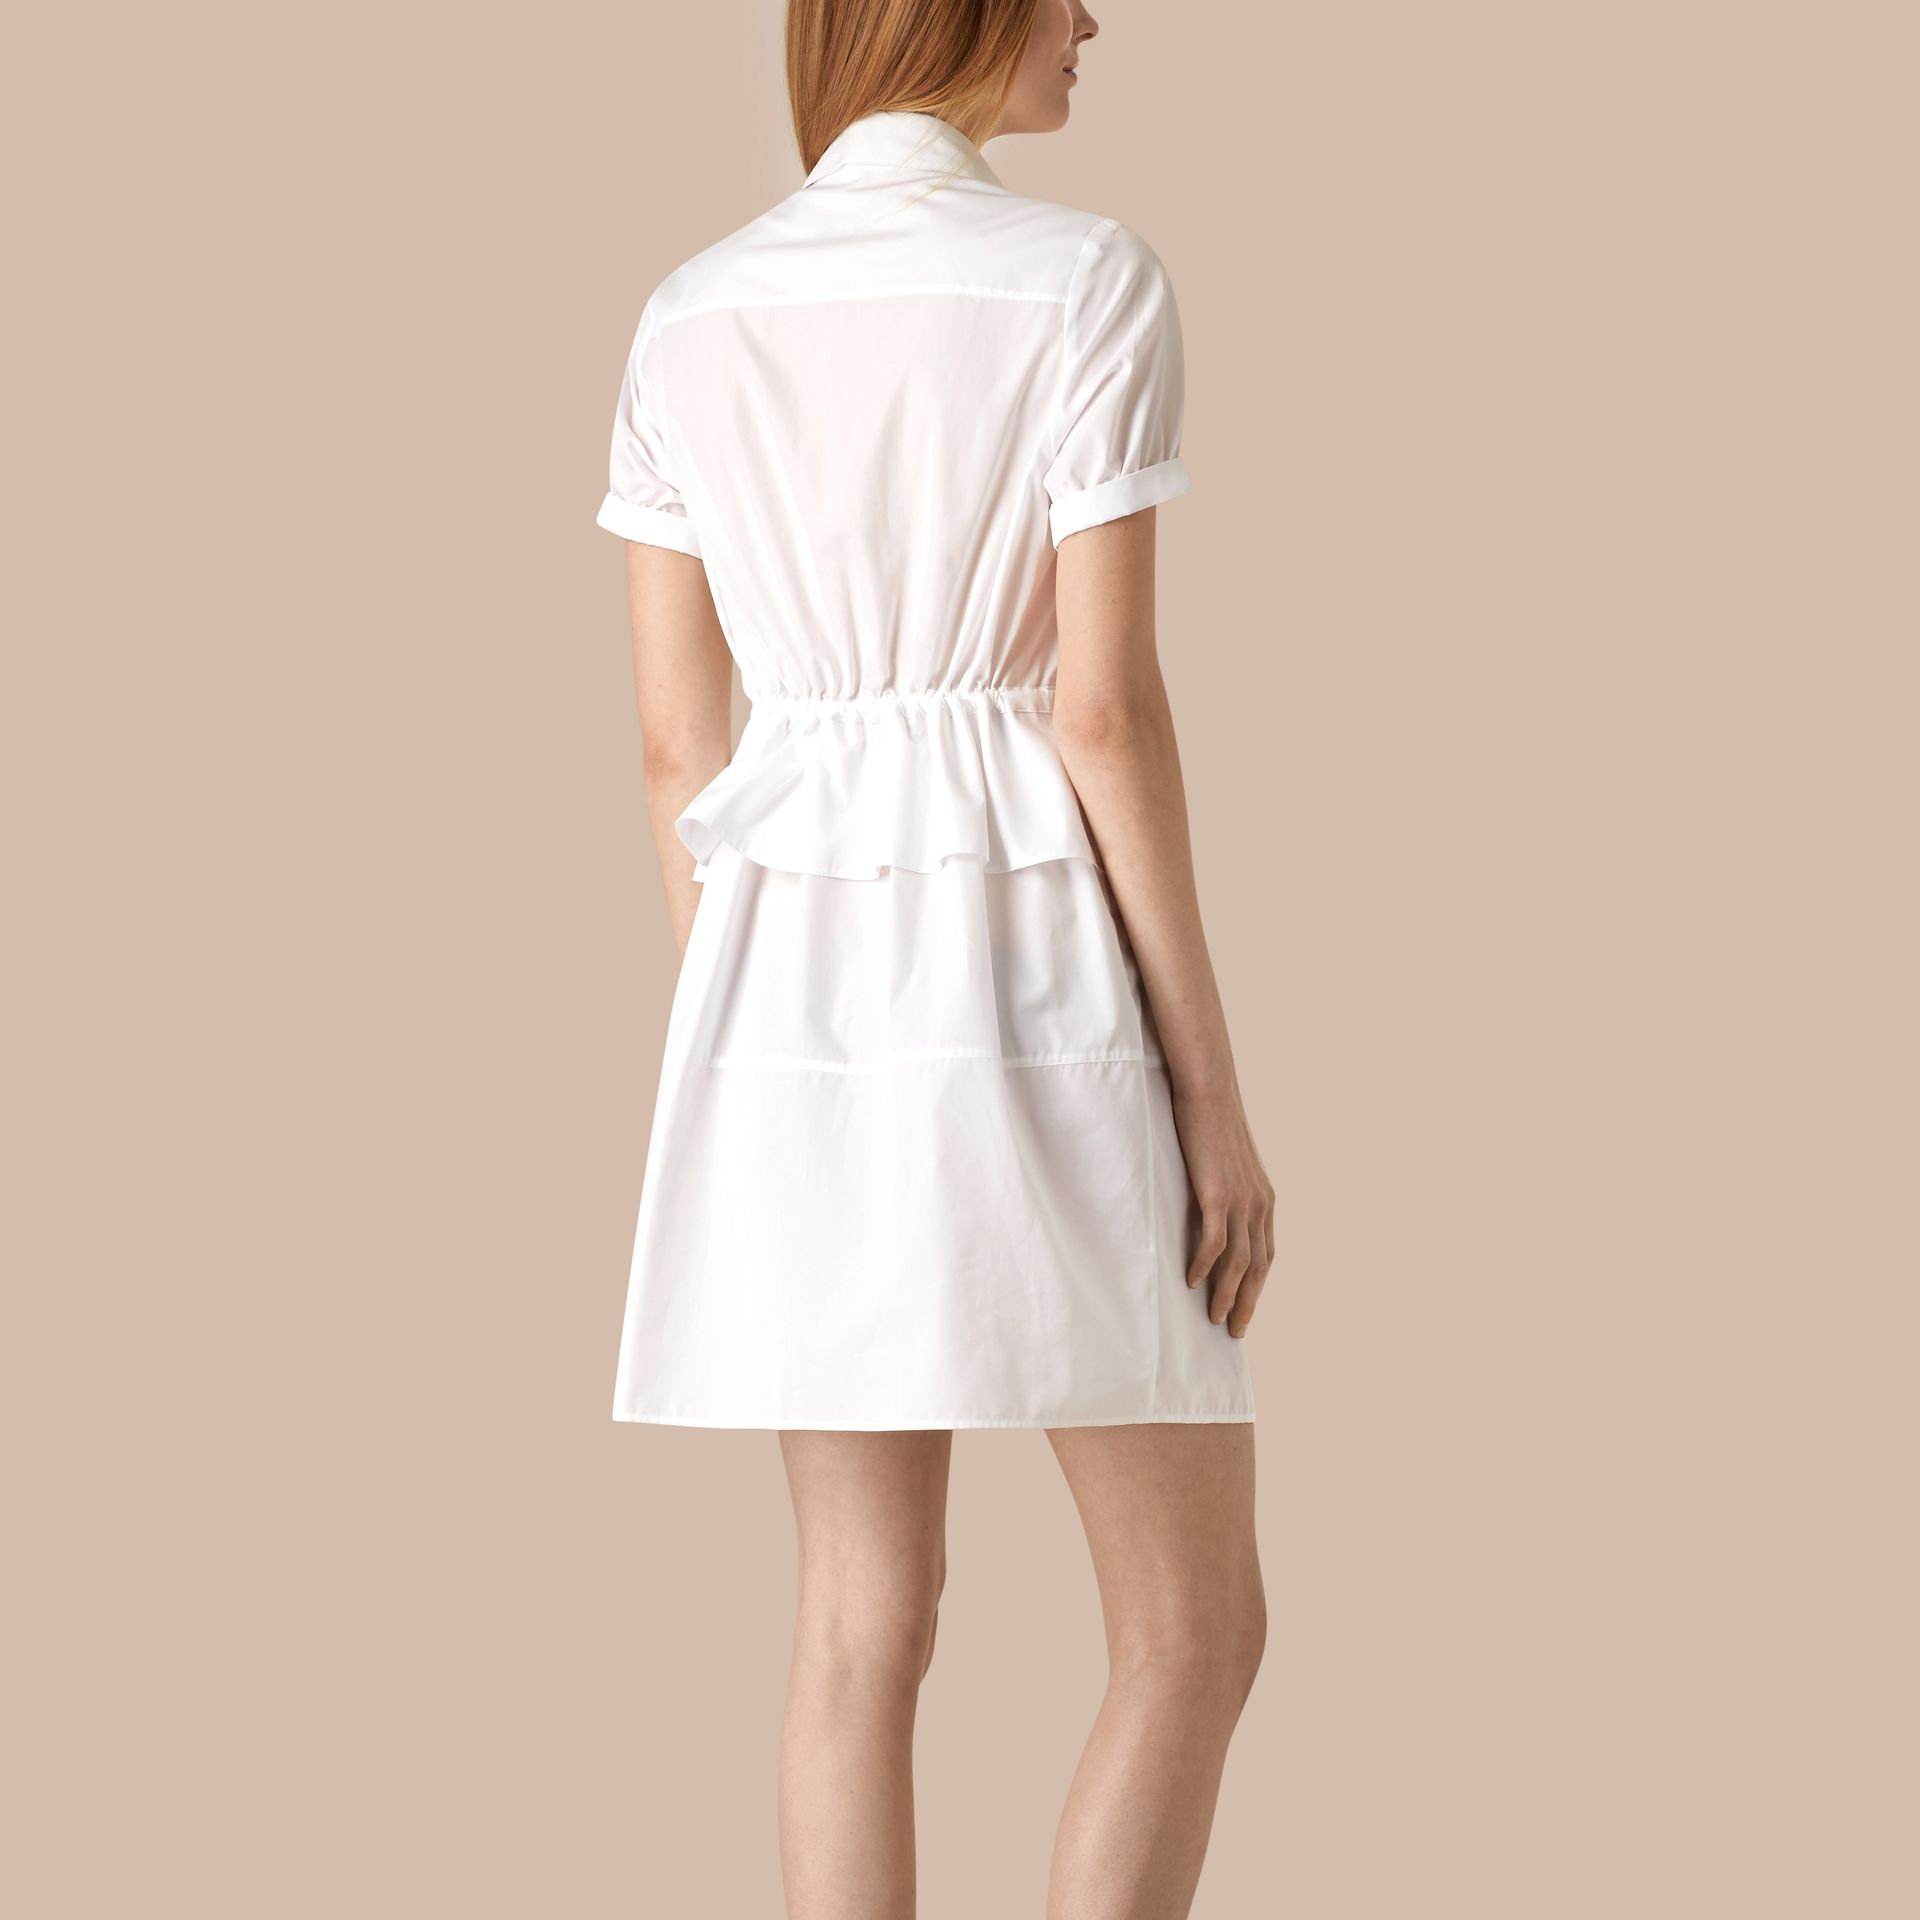 White Peplum Detail Cotton Shirt Dress - gallery image 3